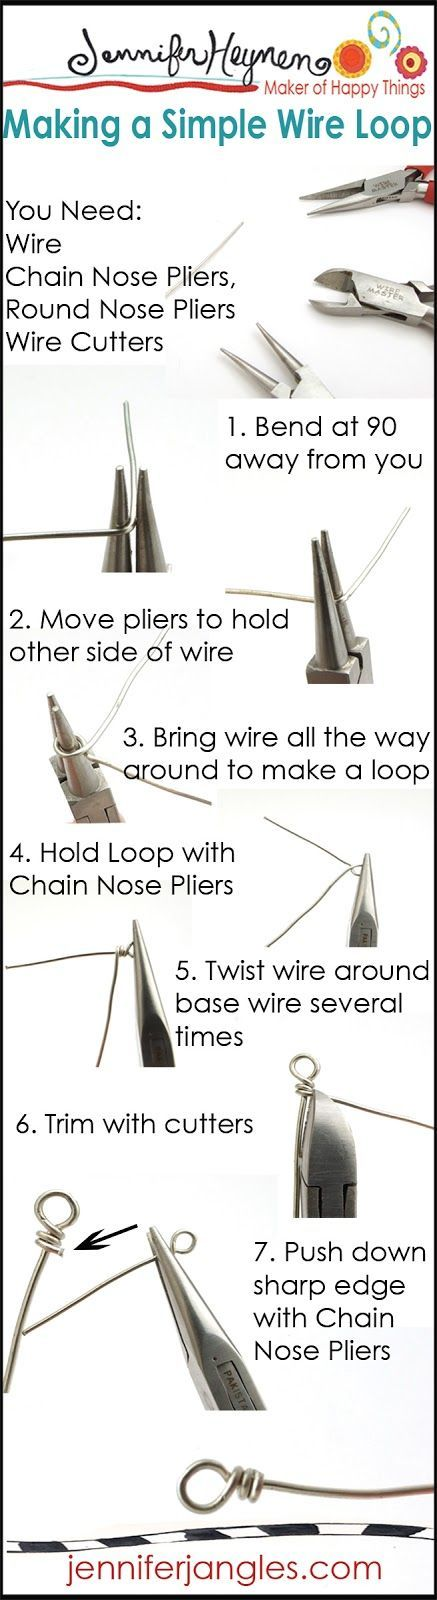 awesome Jewelry Making Basics : Making A Simple Wire Loop #jewelrymaking...                                                                                                                                                                                 More